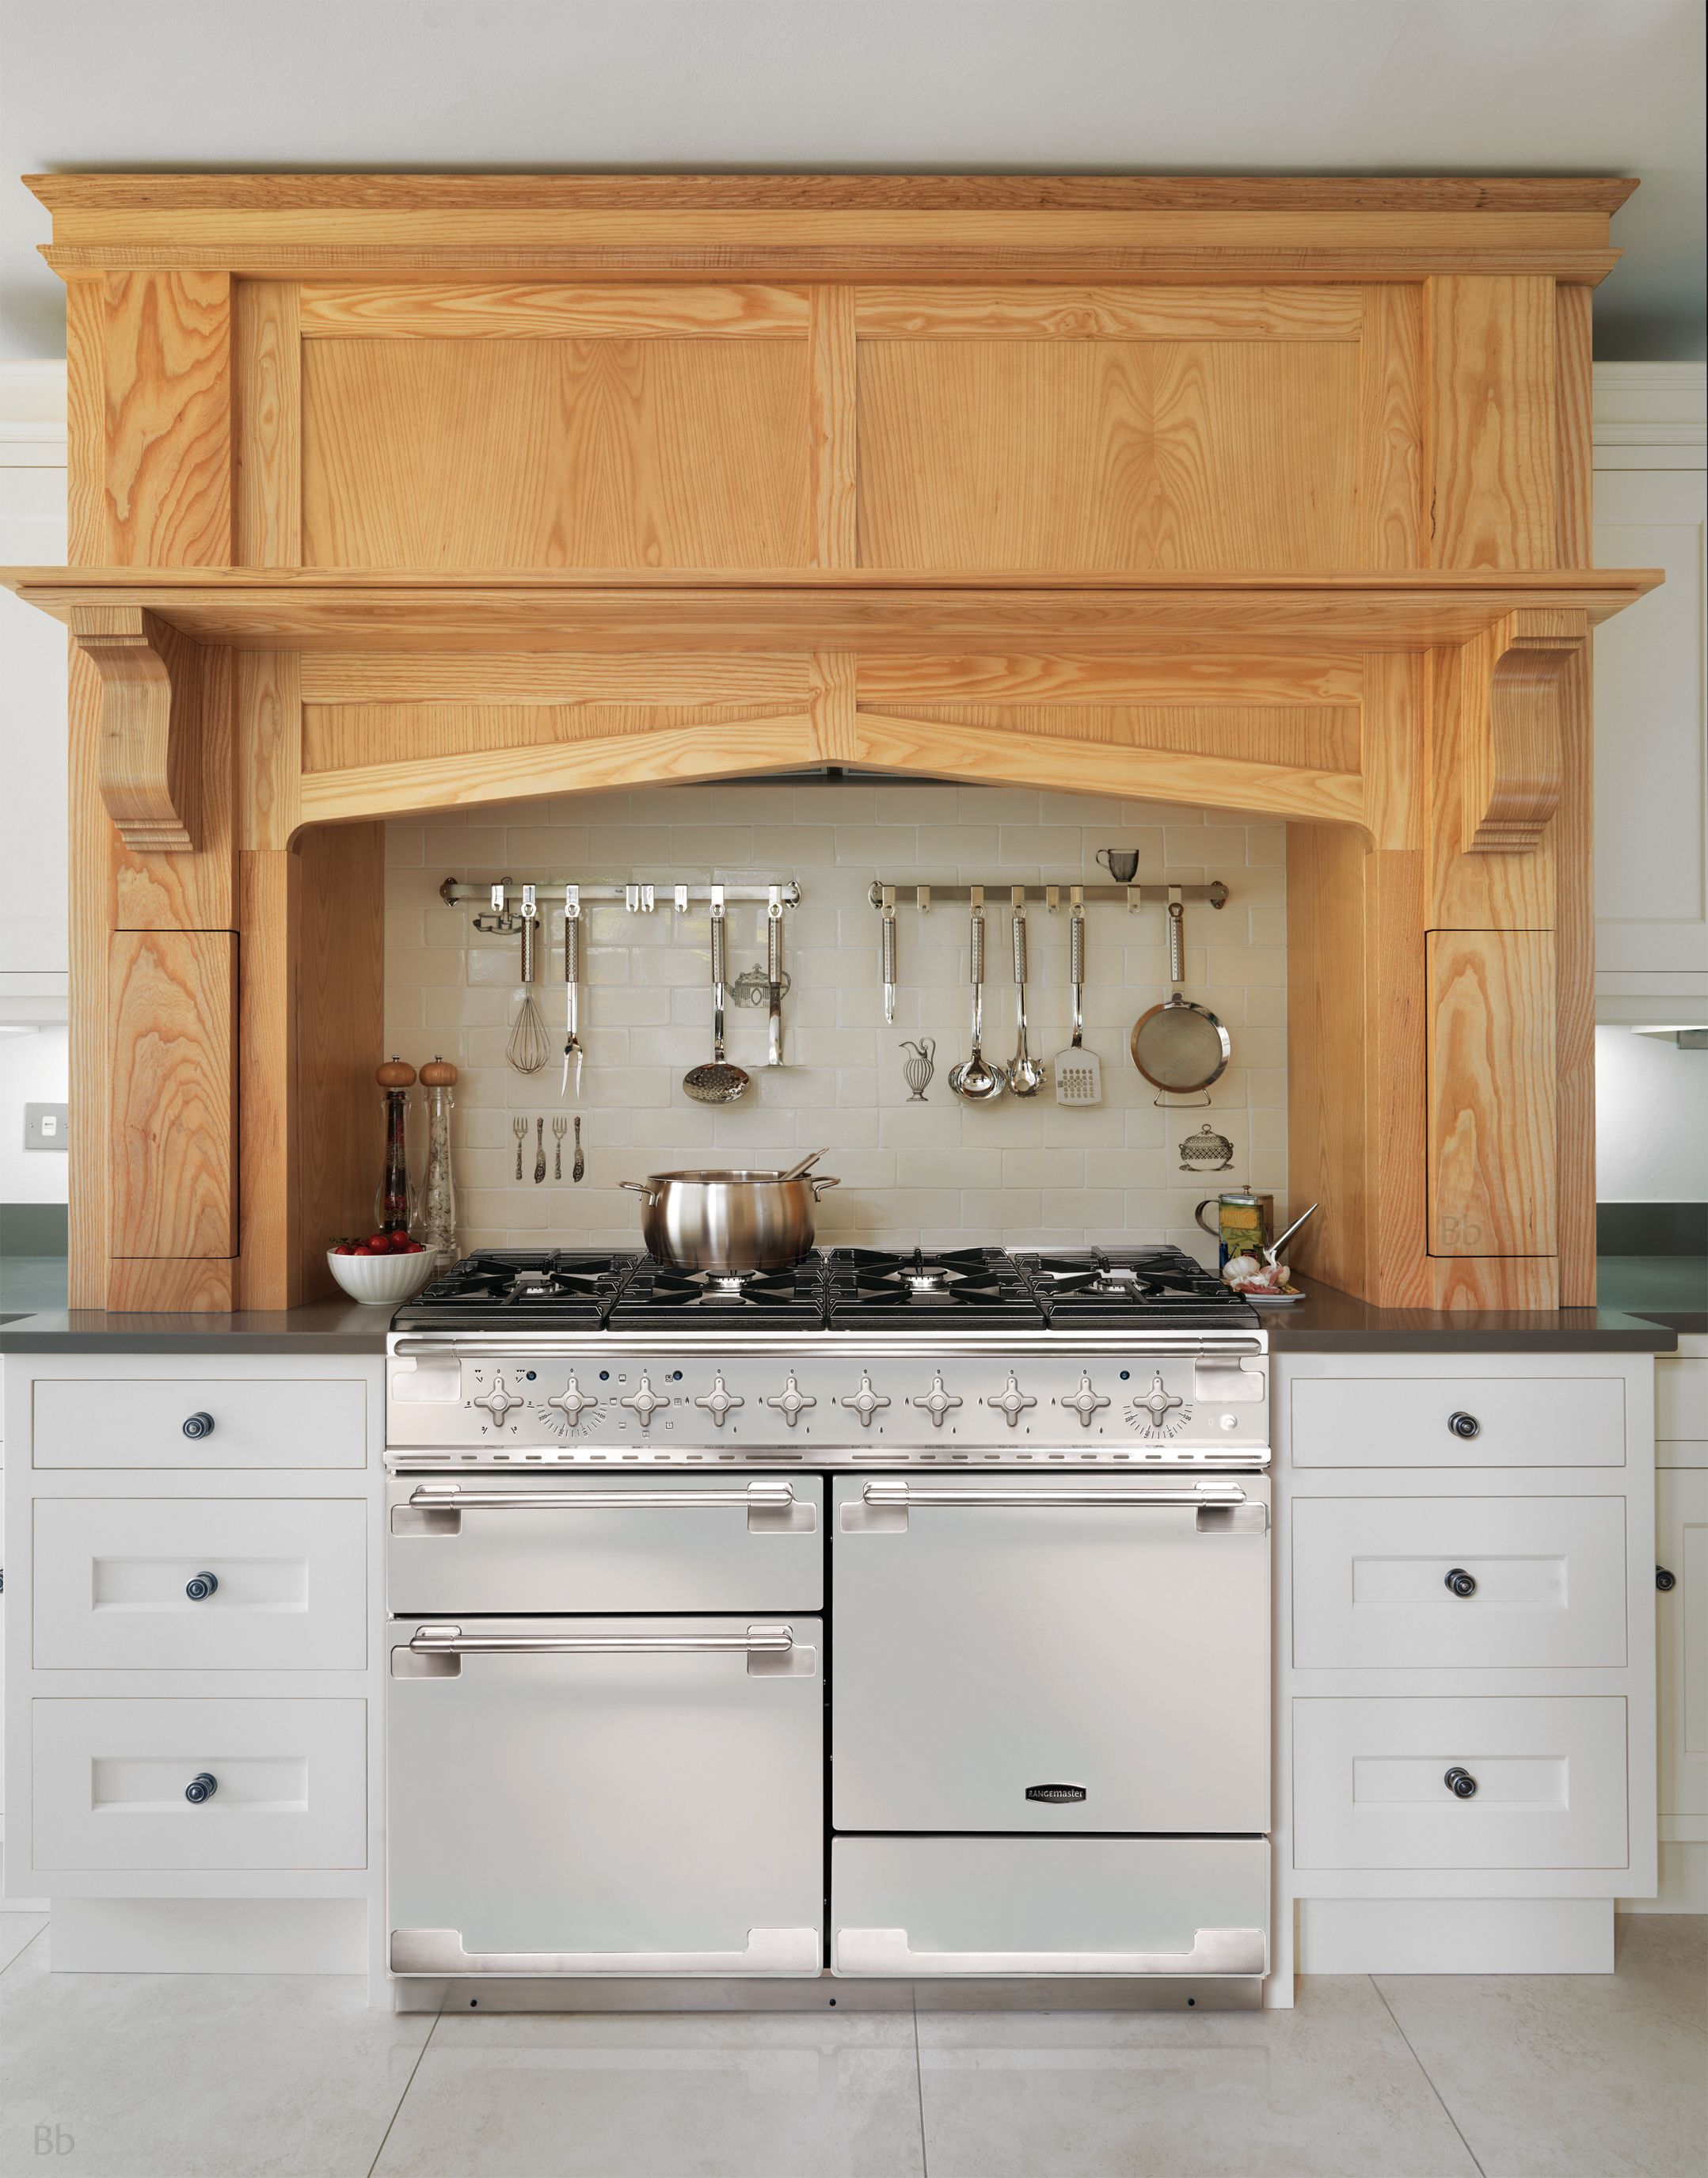 Rangemaster Elise In Ice White And Brushed Stainless Steel Trim  A Stylish  Focal Point In Any Kitchen!